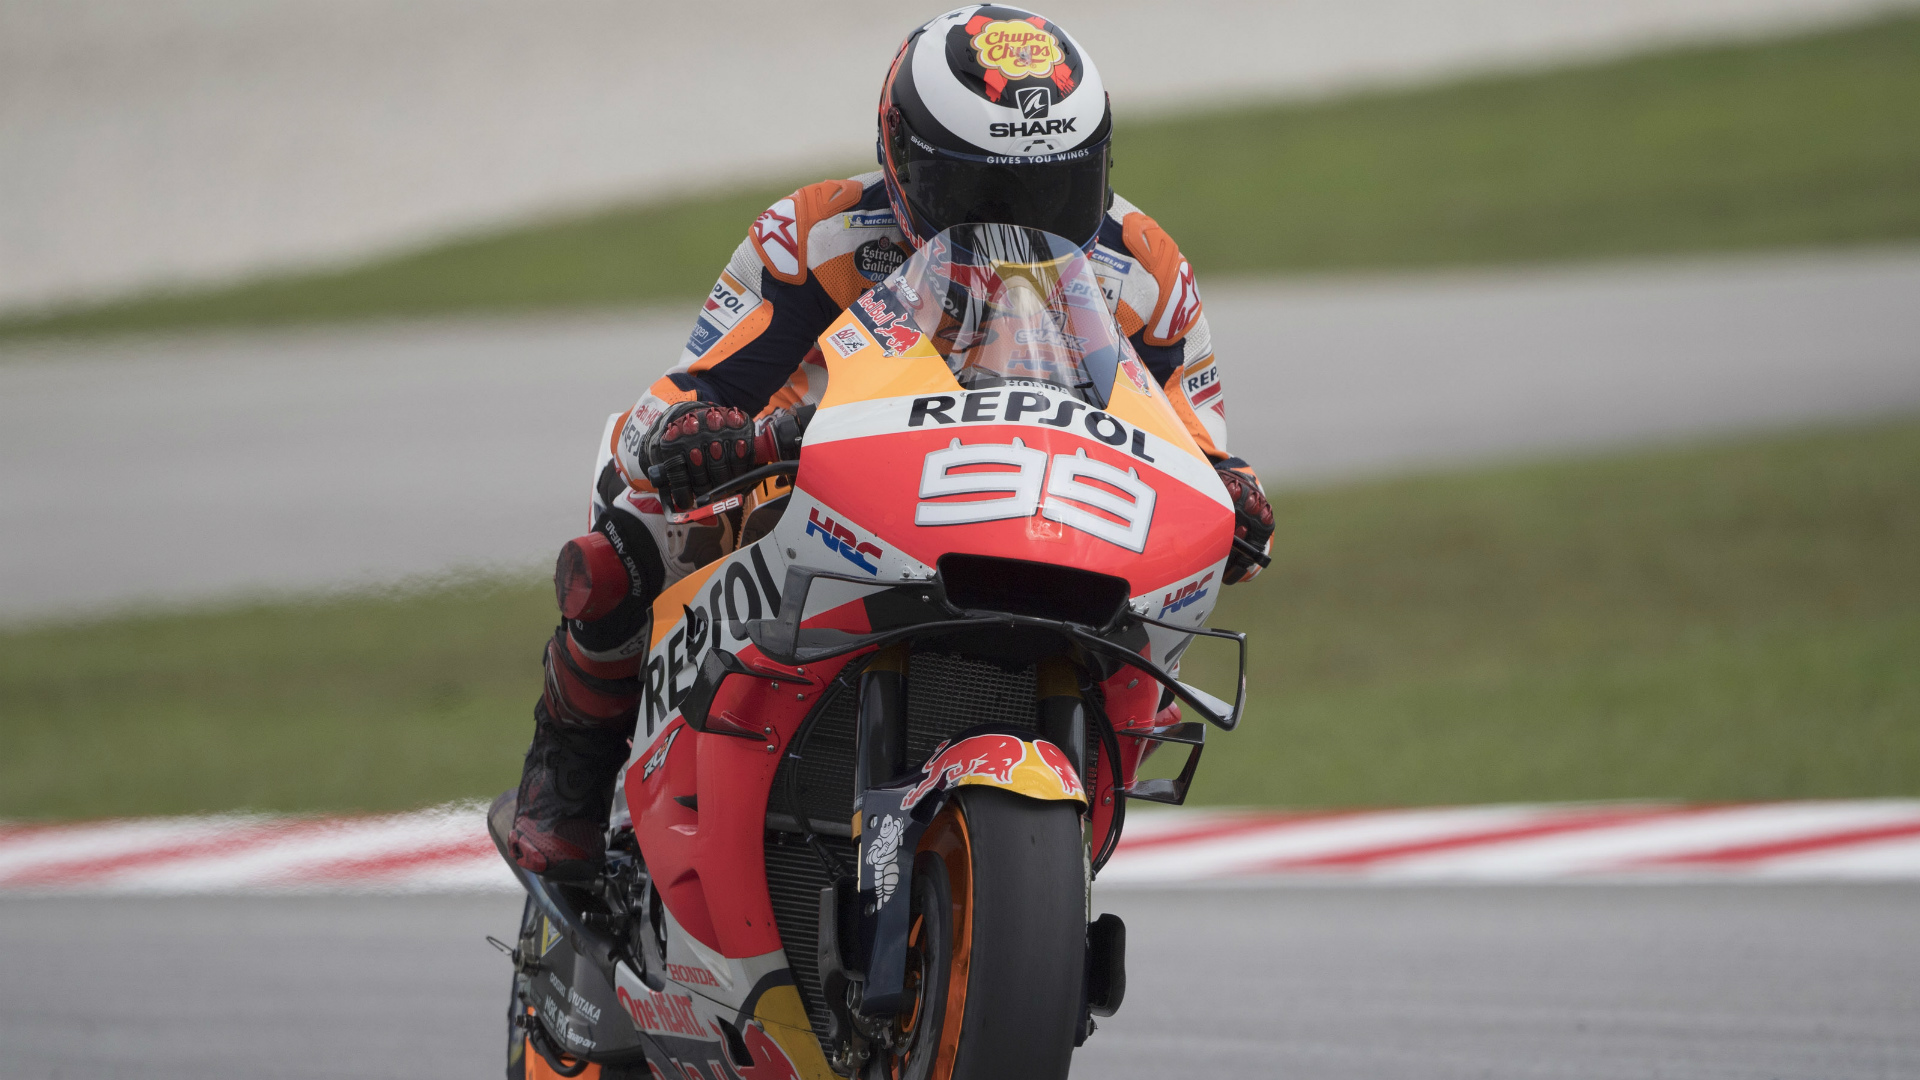 Fabio Quartararo and Marc Marquez make up familiar names at the front of the grid for the final race of Jorge Lorenzo's career.